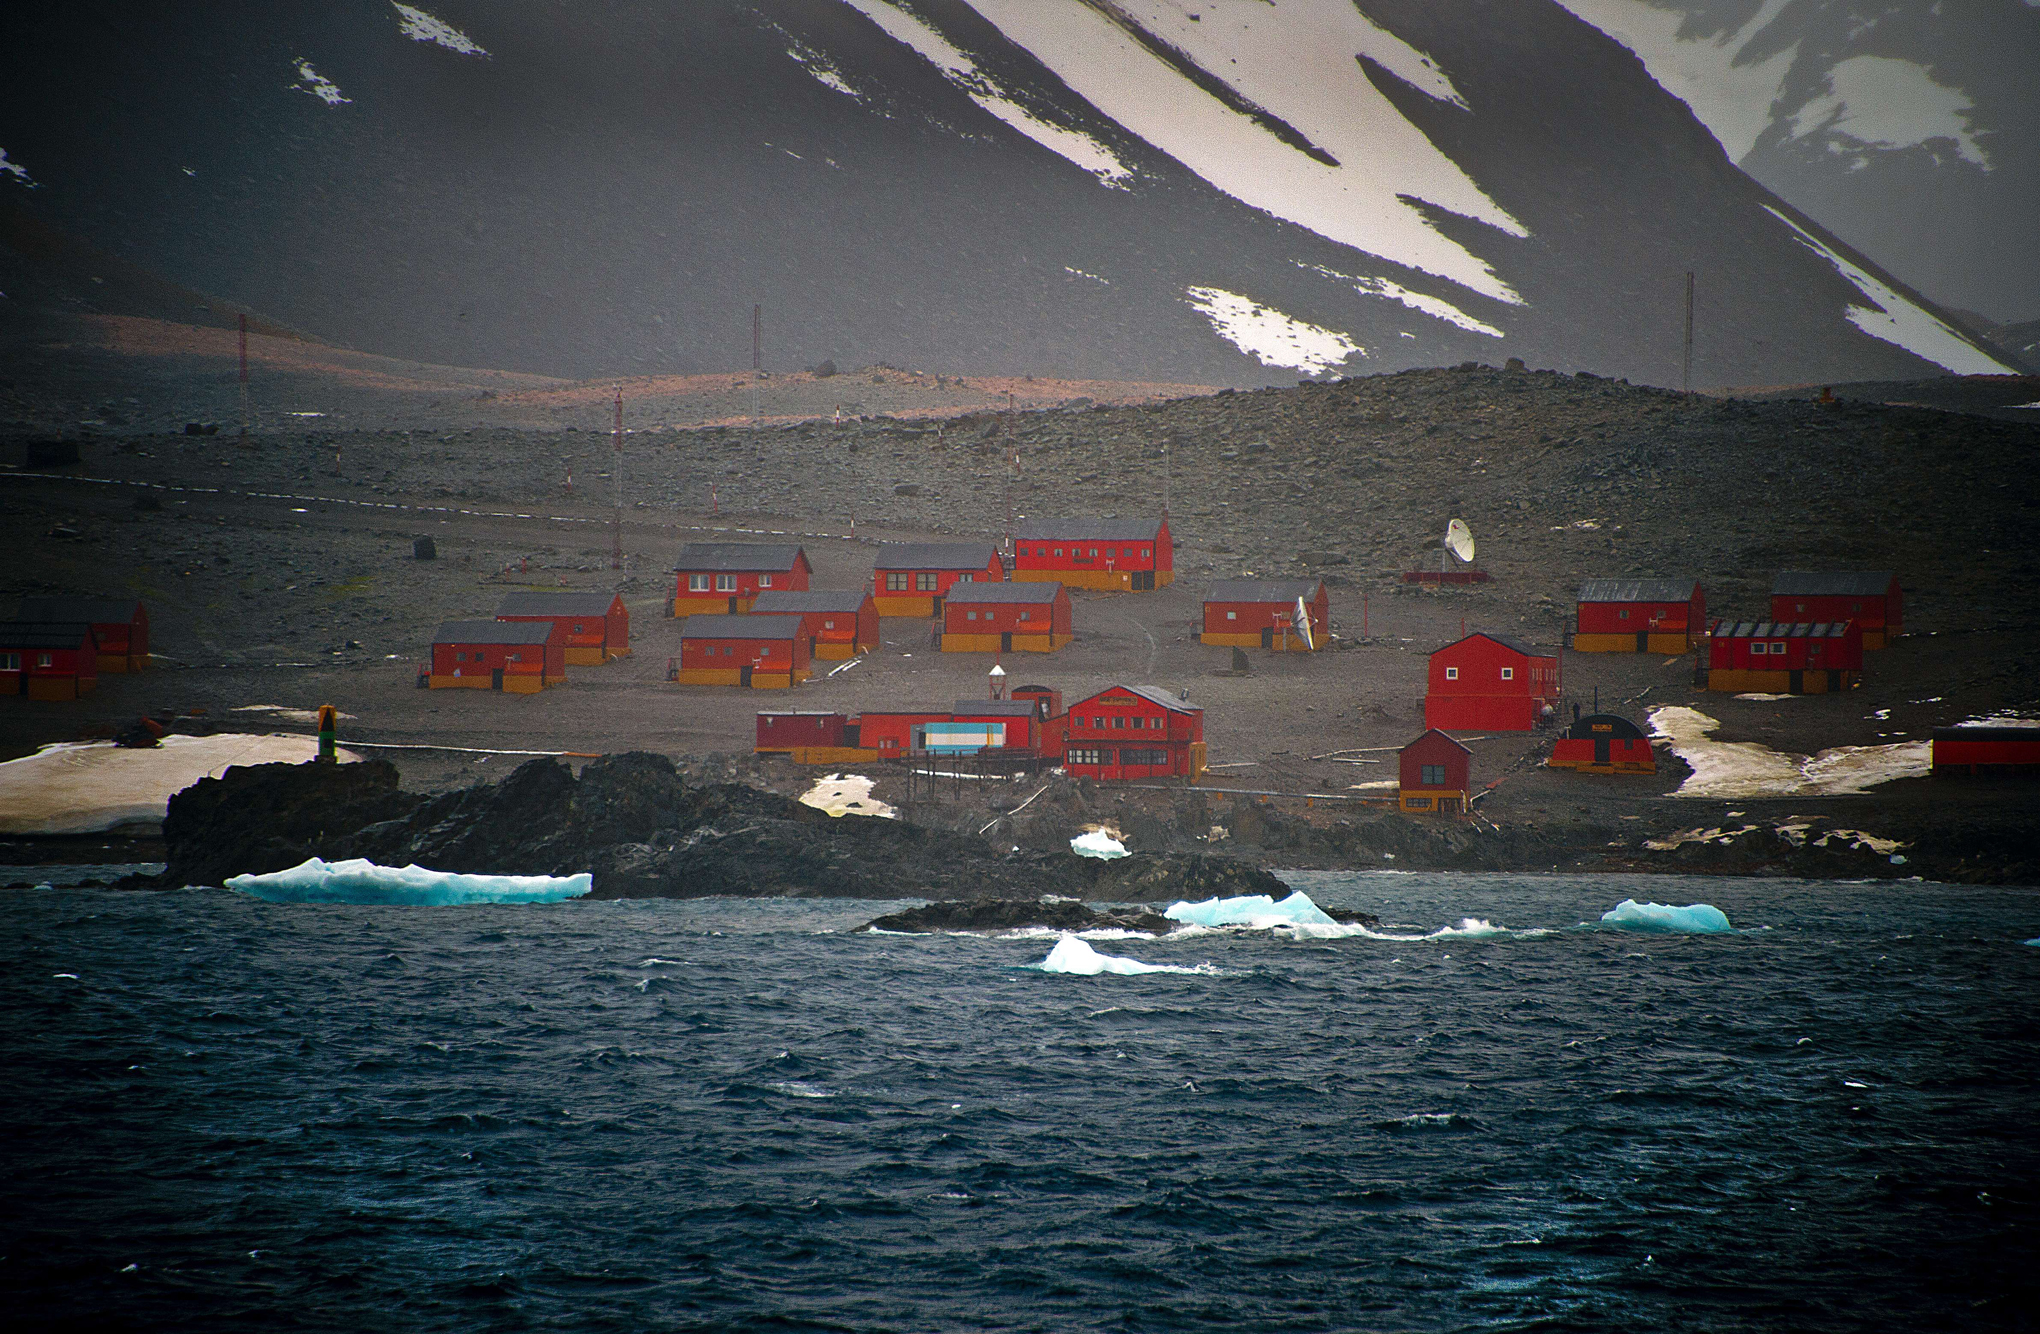 View of the Argentinian Esperanza military base from the Brazilian Navy's Oceanographic Ship Ary Rongel in Antarctica on March 5, 2014.